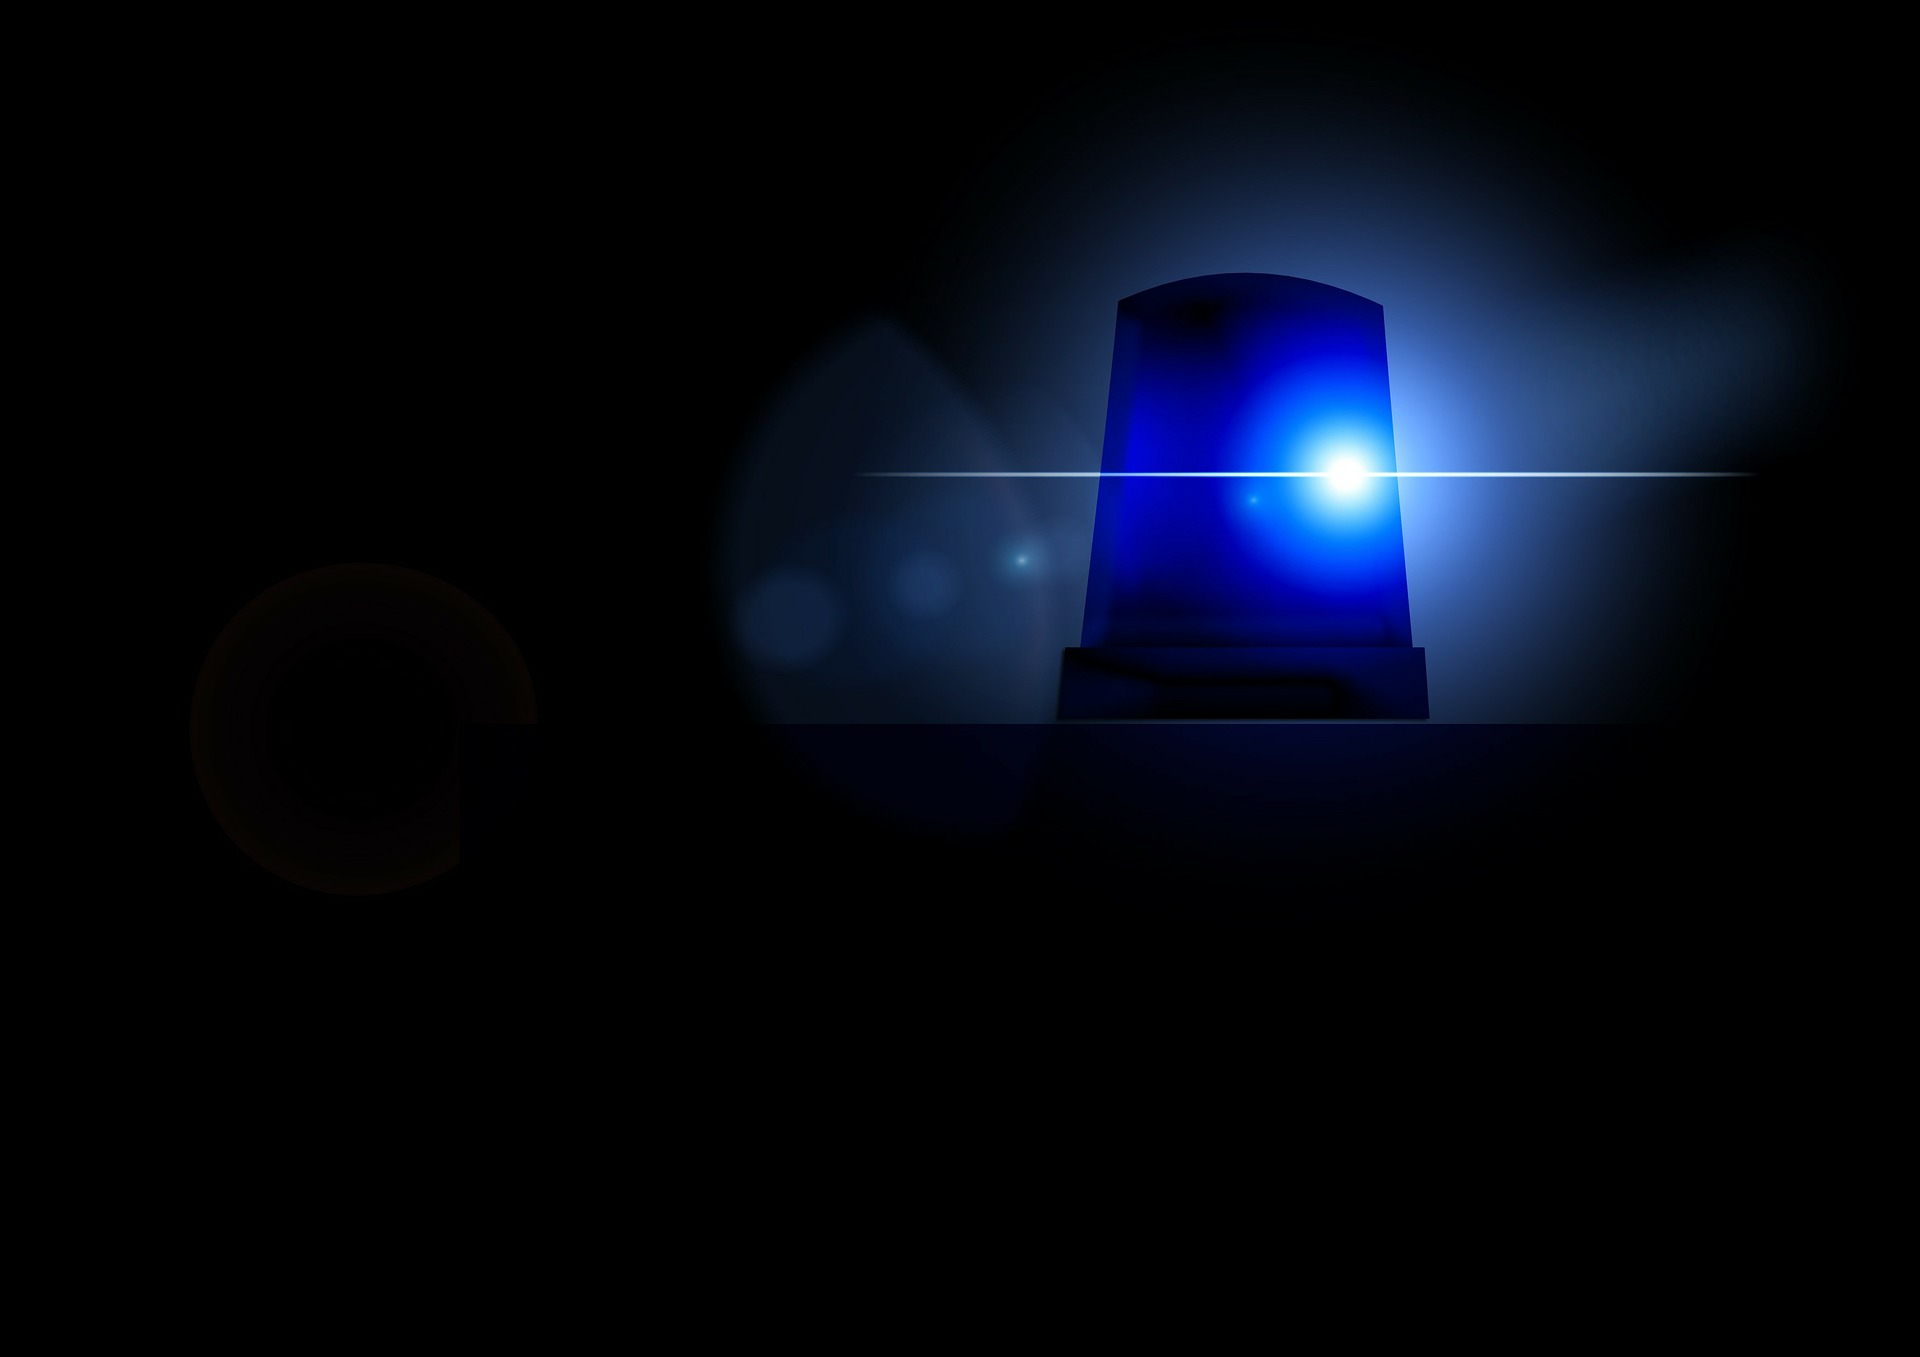 Police light bright against a dark backdrop.